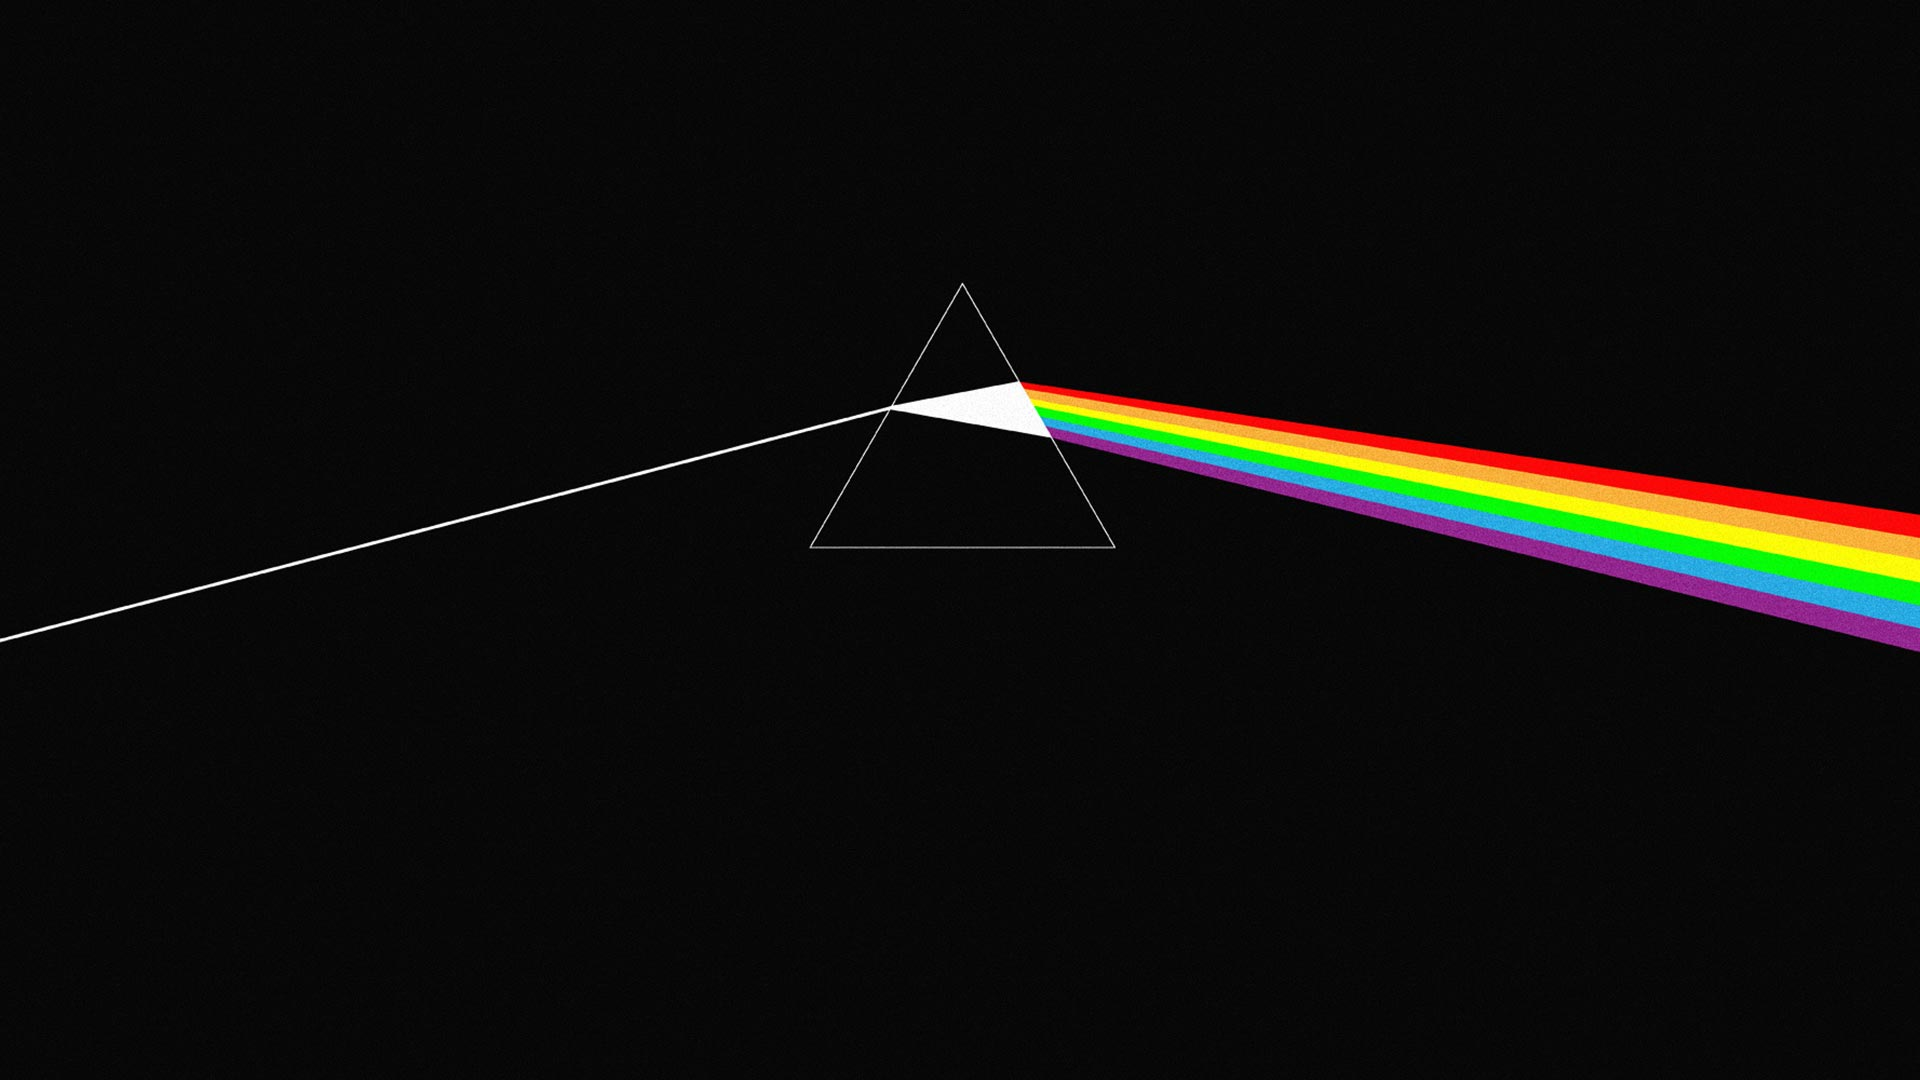 Pink Floyd Dark Side of the Moon HD Wallpaper   Cool Wallpapers 1920x1080